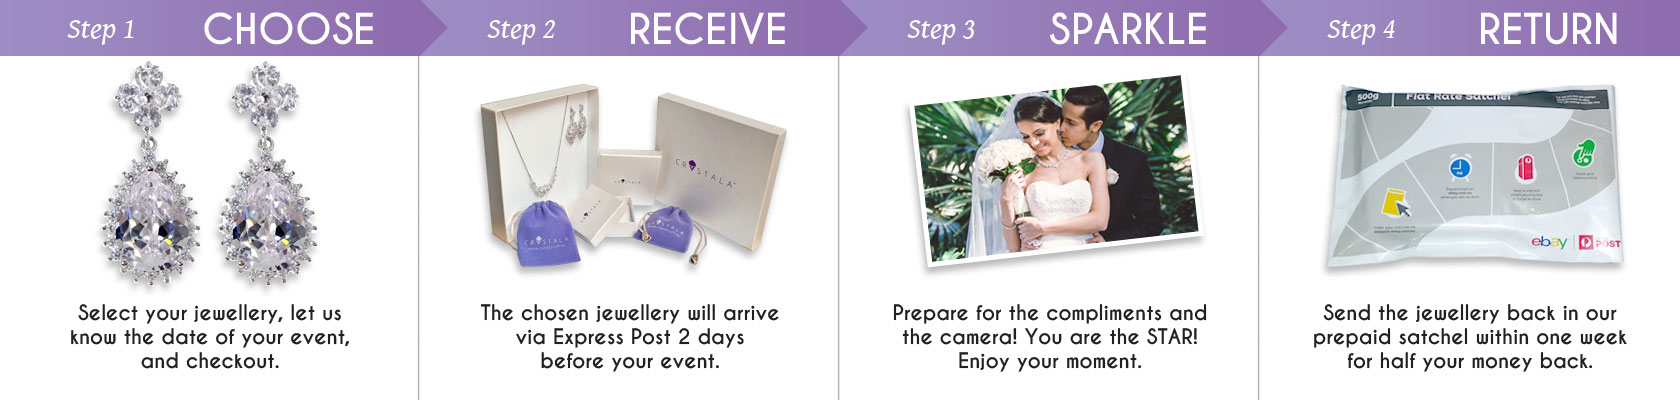 Hire Crystala Jewellery in 4 simple steps